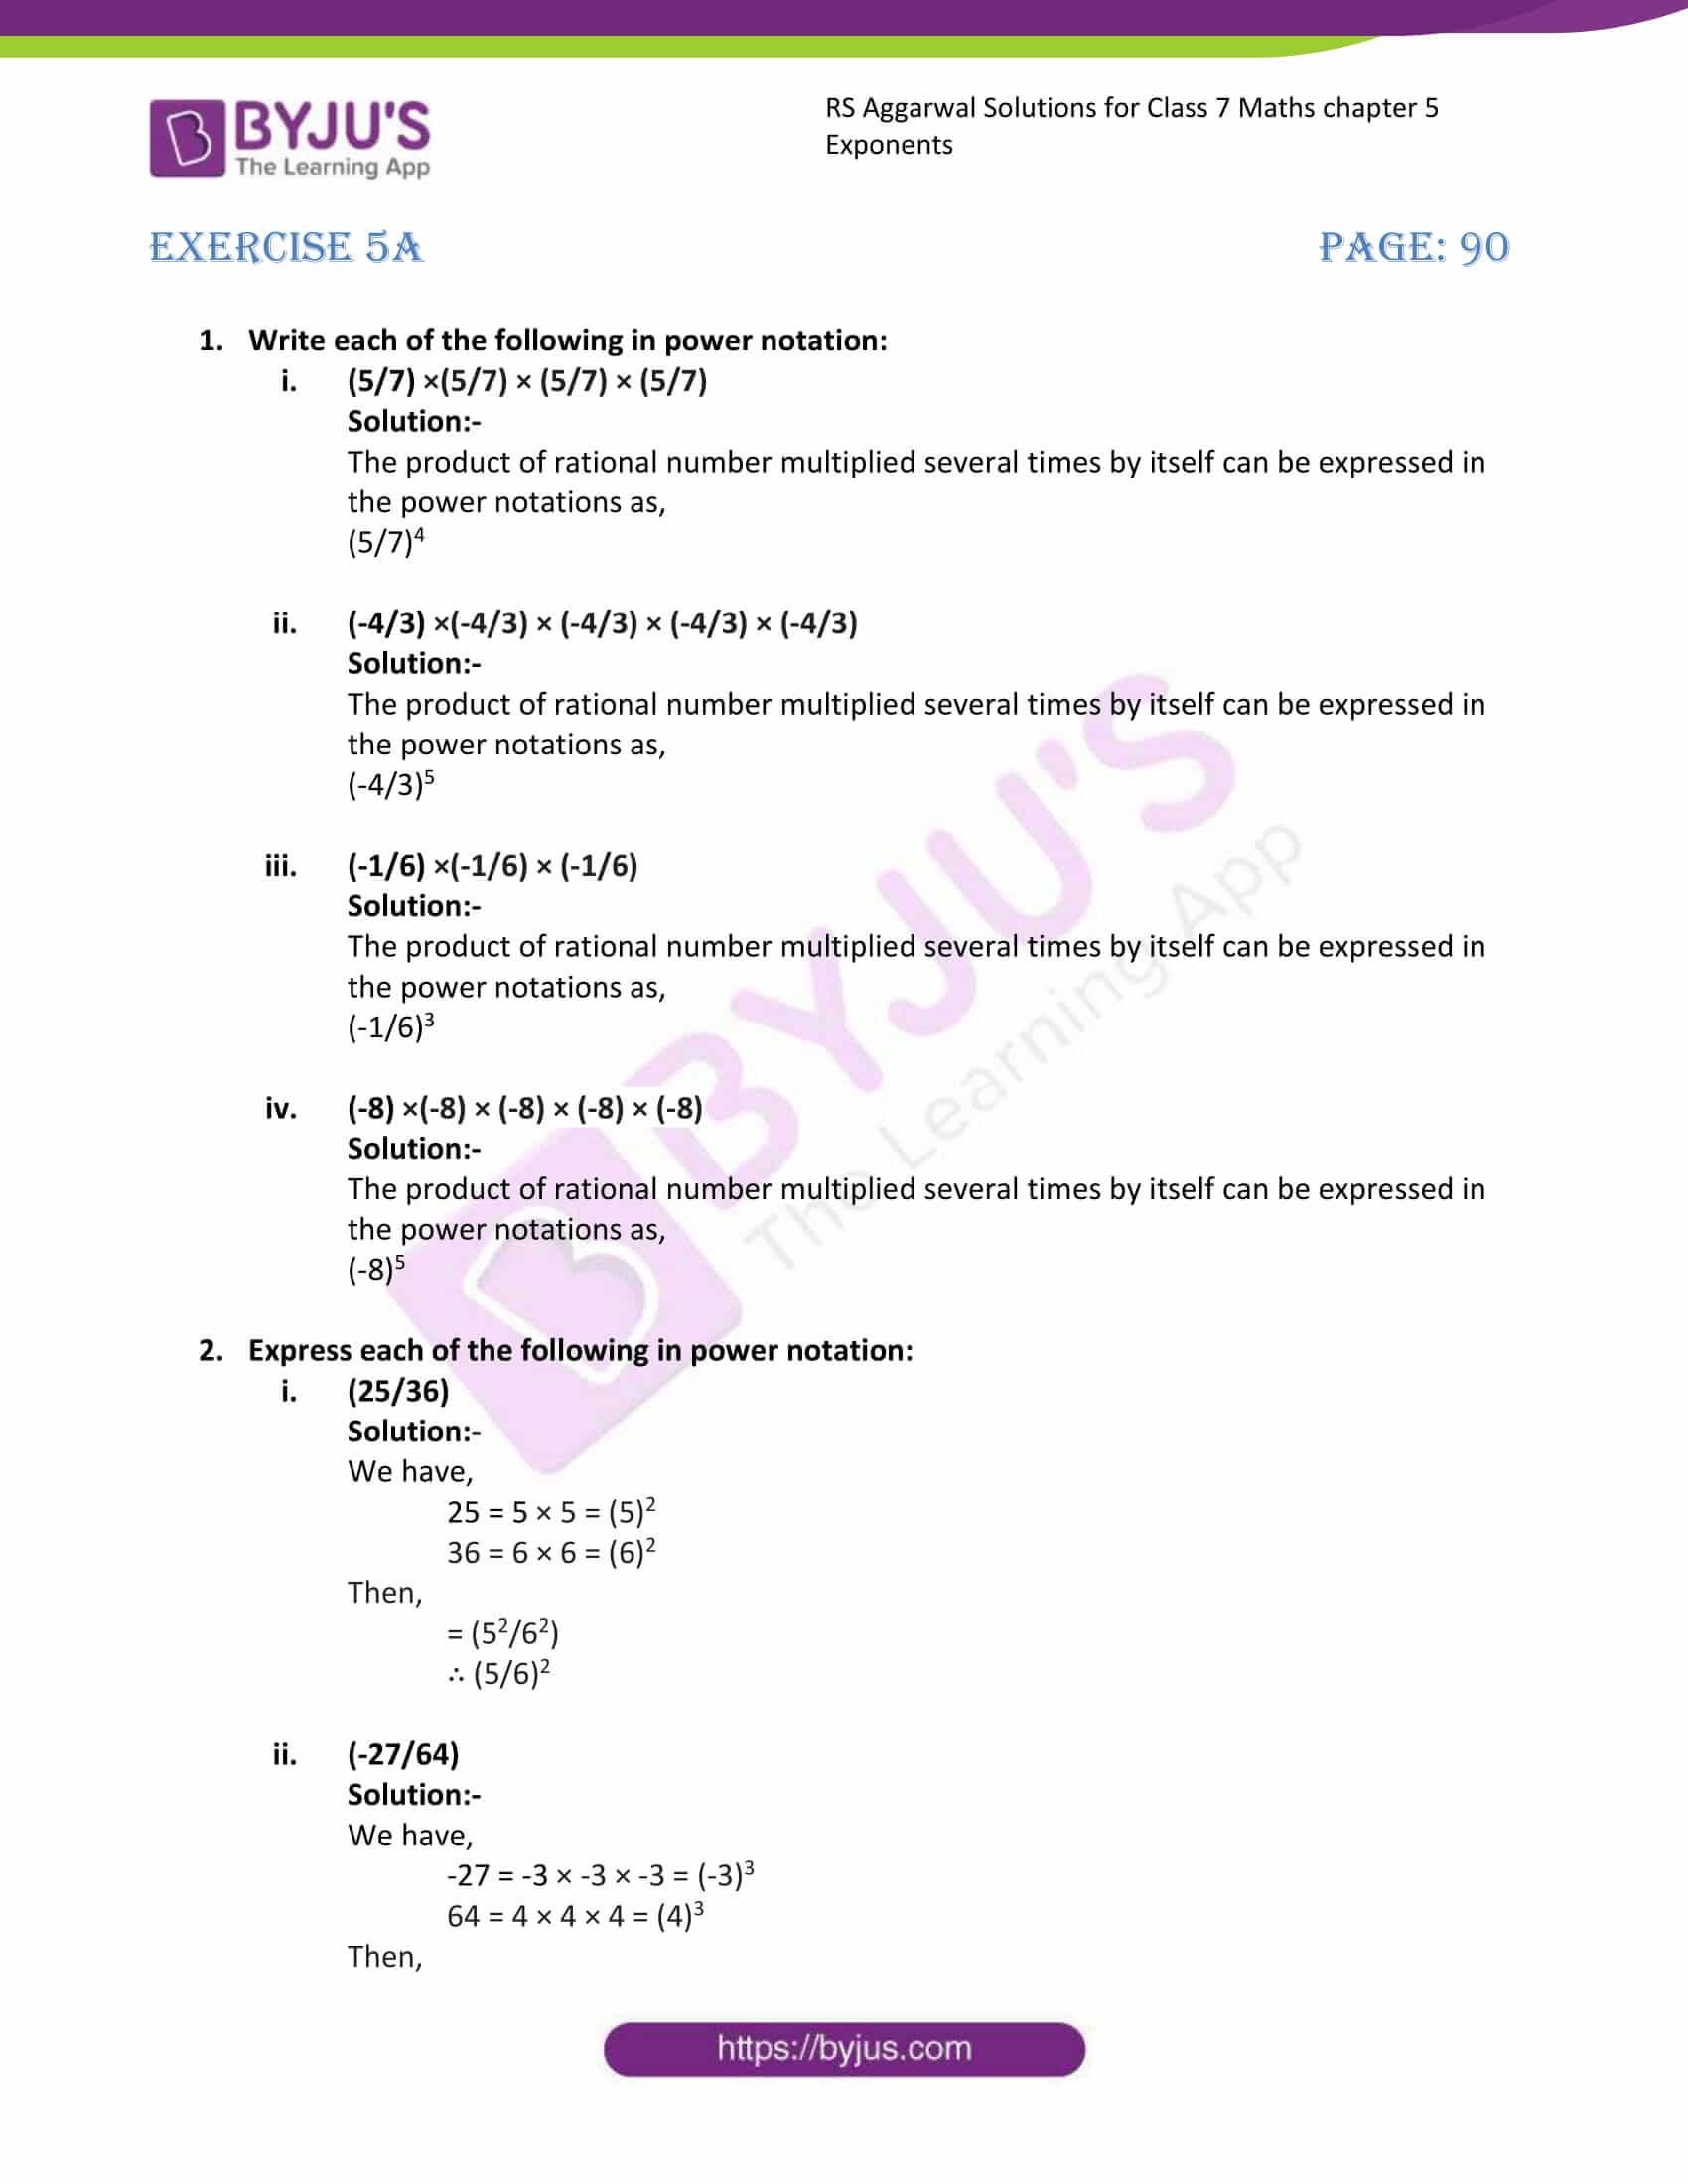 rs aggarwal solution class 7 maths chapter ex 5a